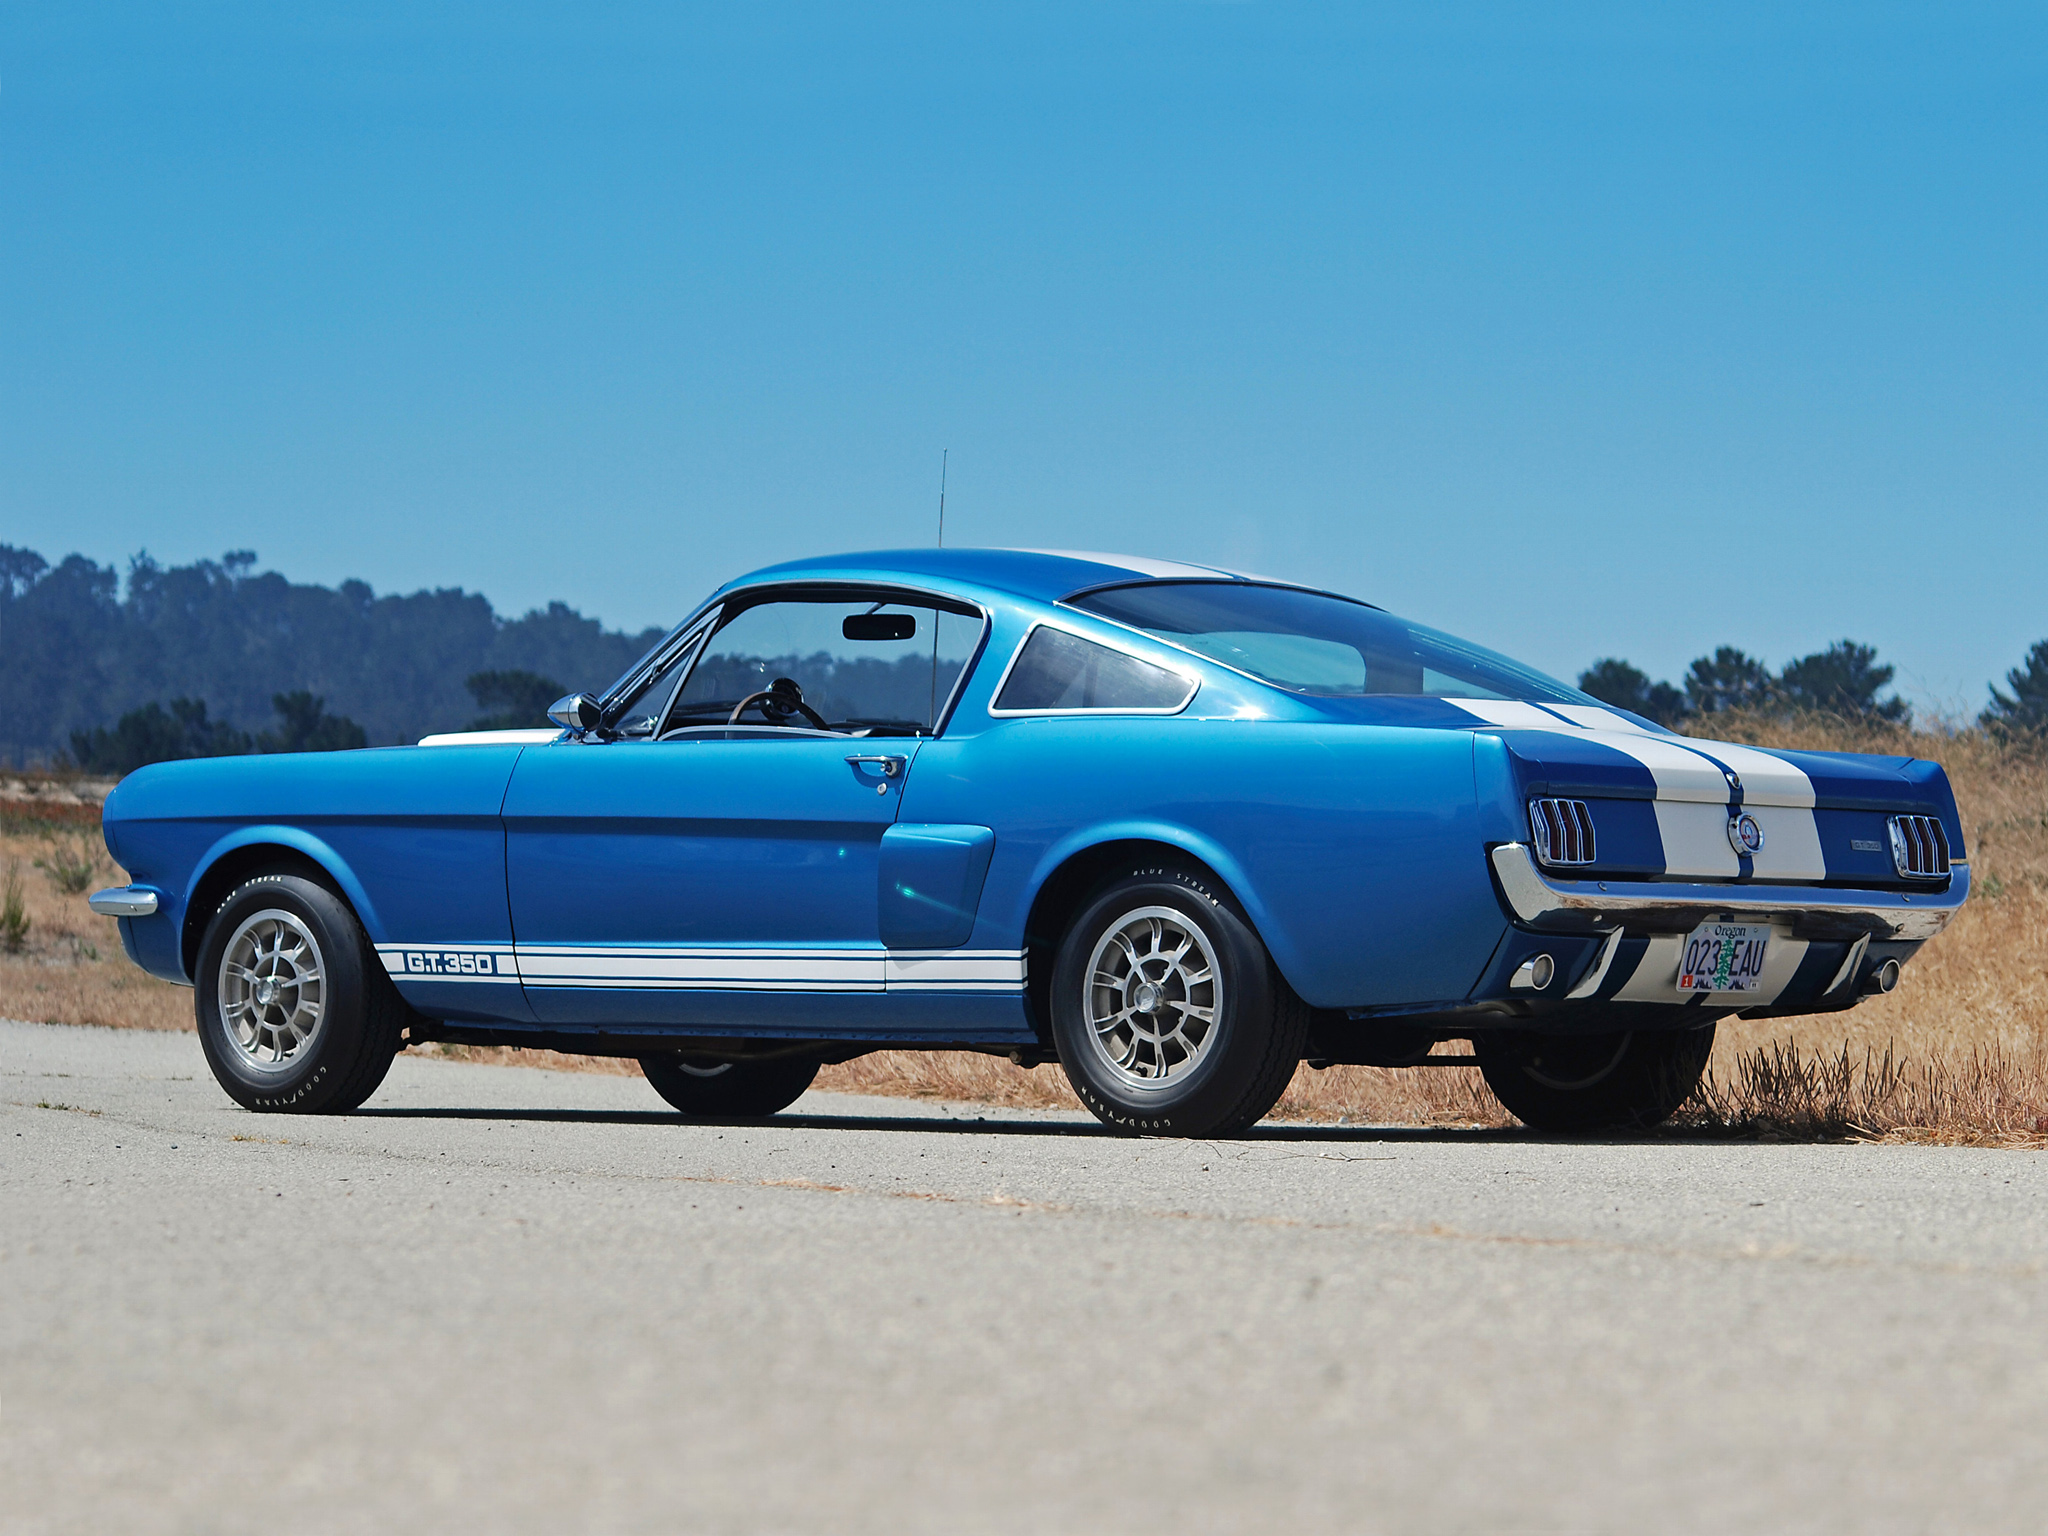 1965 Shelby GT350 ford mustang classic muscle az wallpaper background 2048x1536